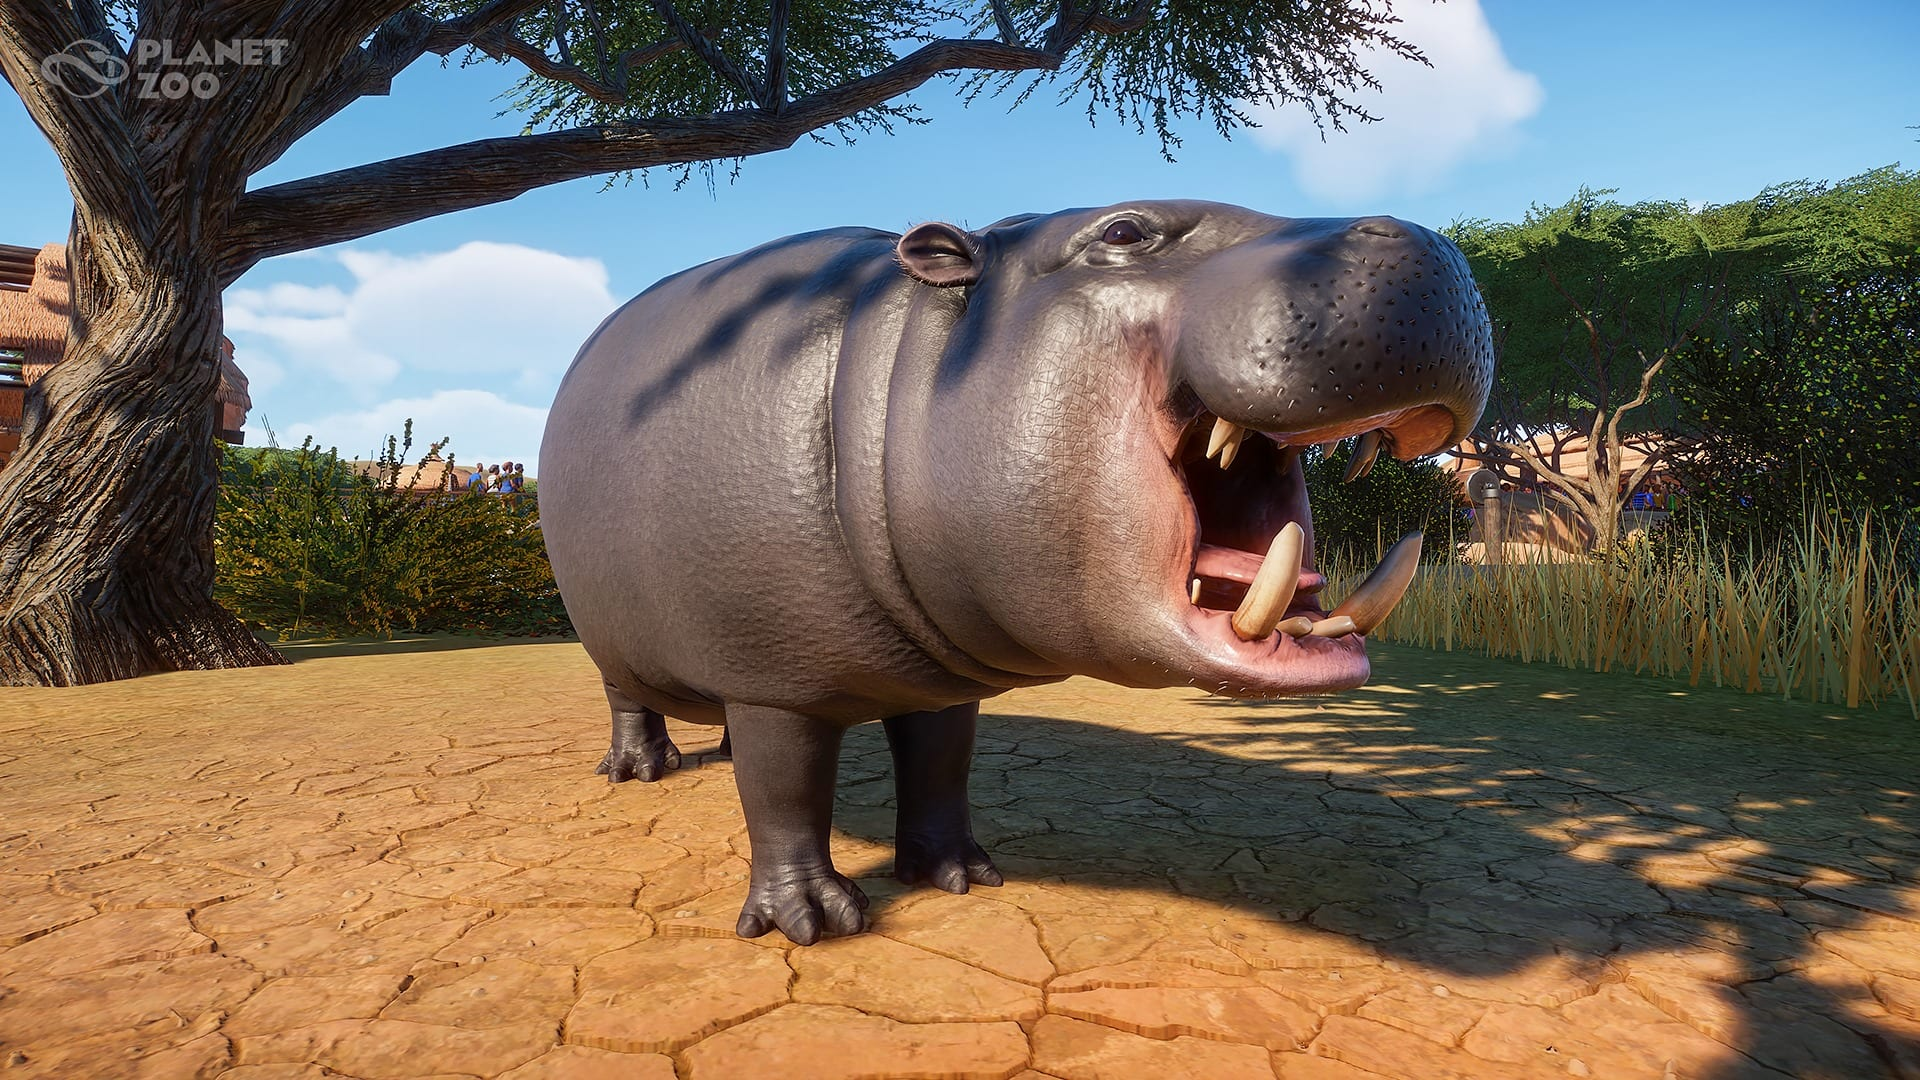 how to breed animals, planet zoo